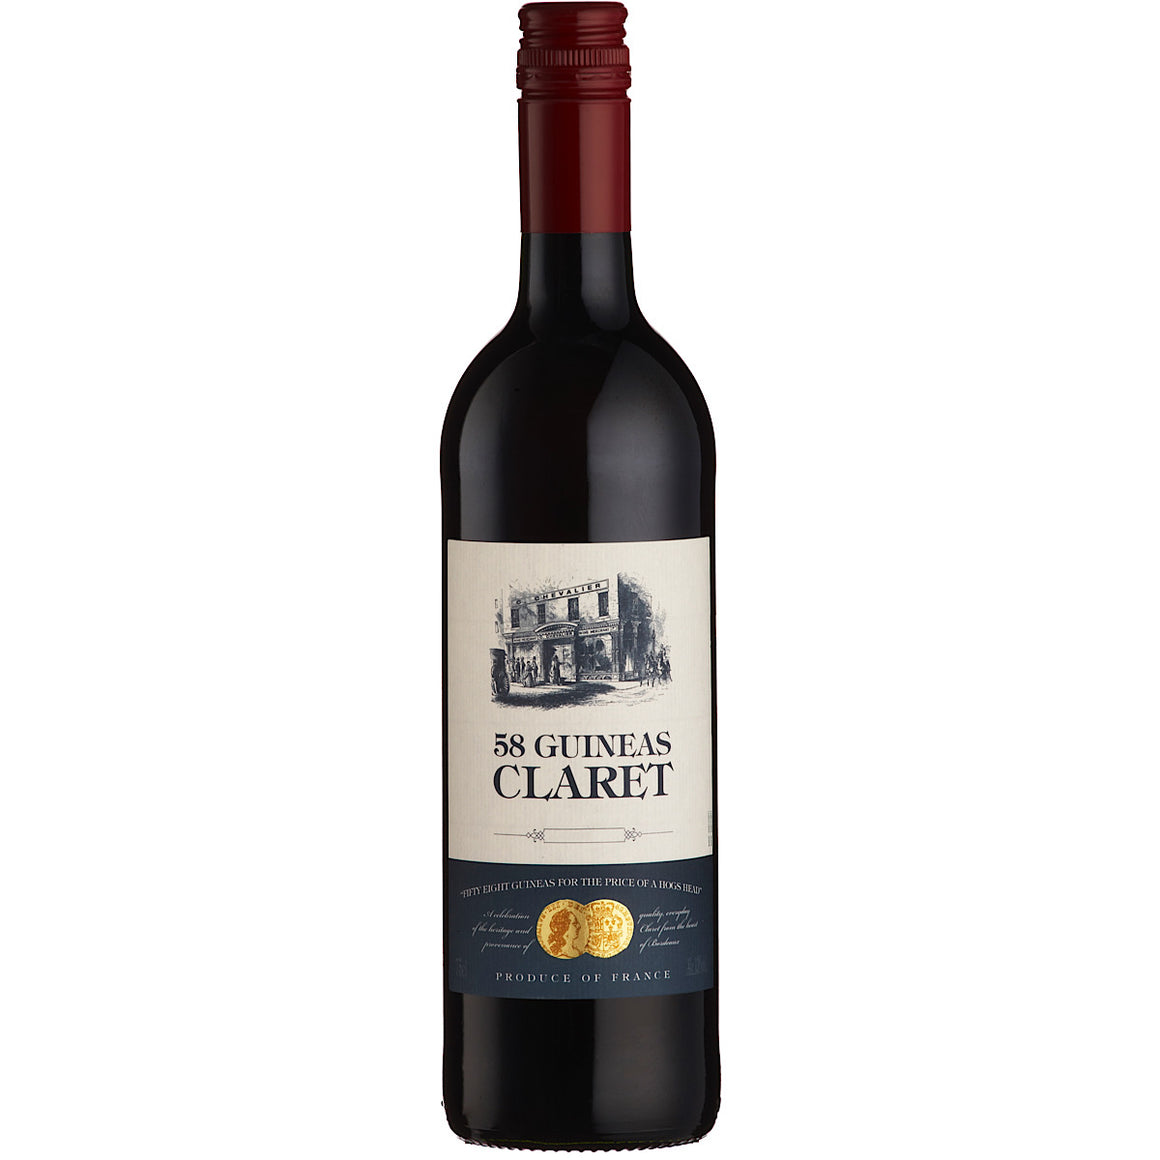 '58 Guineas' Claret, Bordeaux  12 Bottle Case 2018